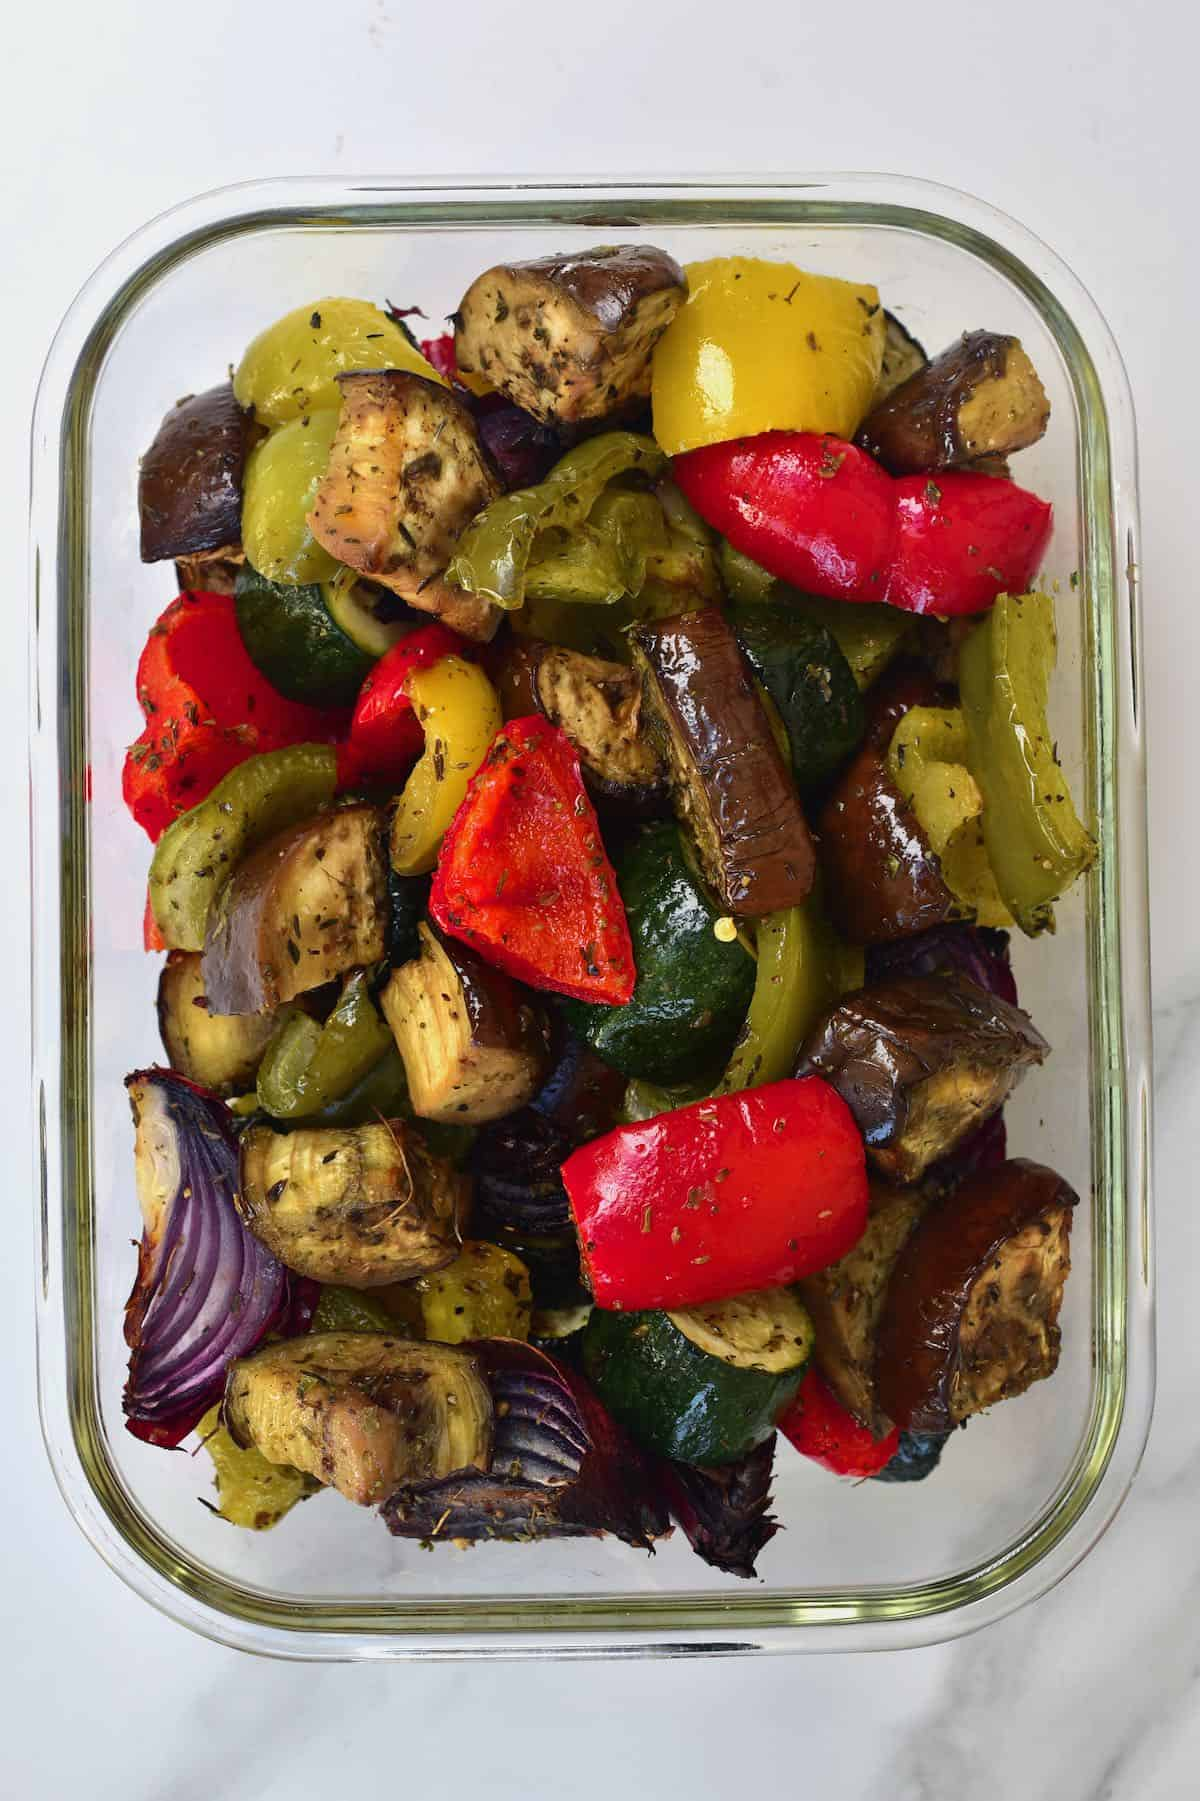 Mediterranean roasted vegetables in a small container